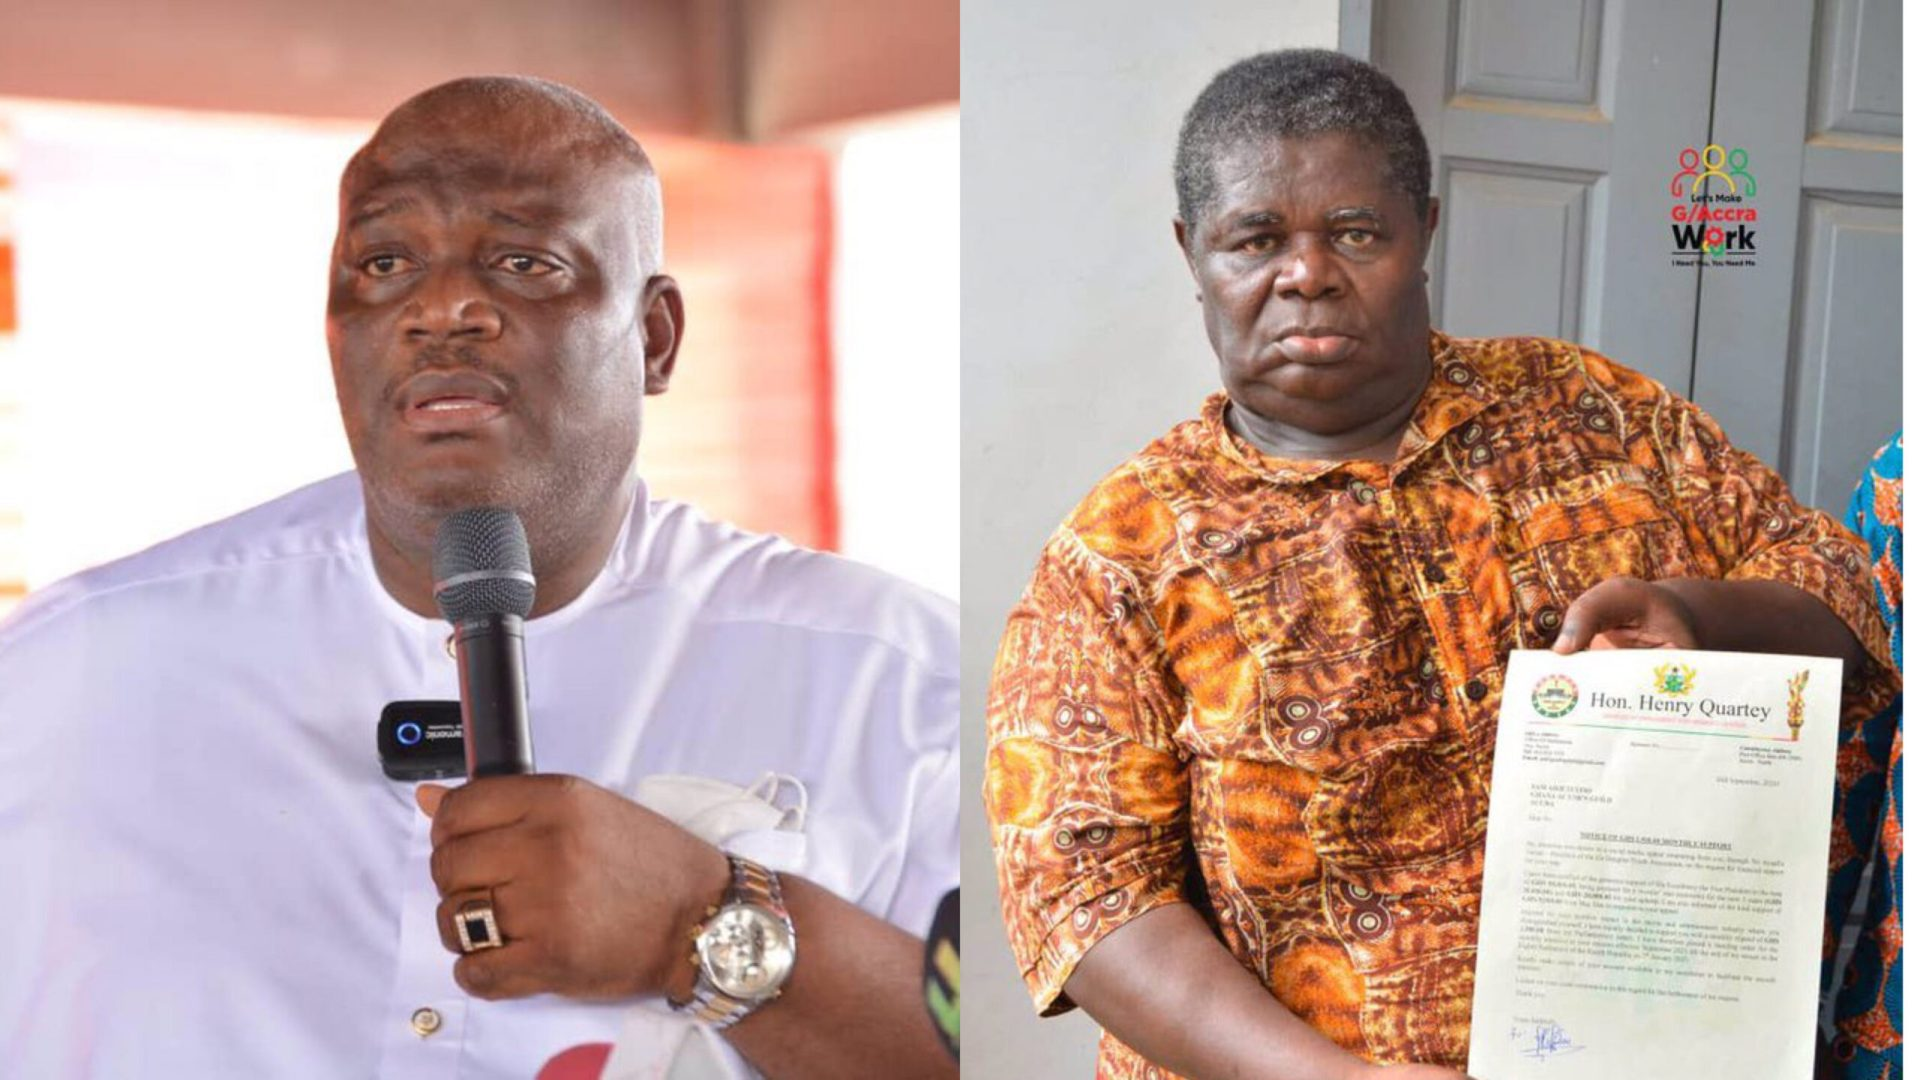 Henry Quartey Donates Part Of His Salary To TT